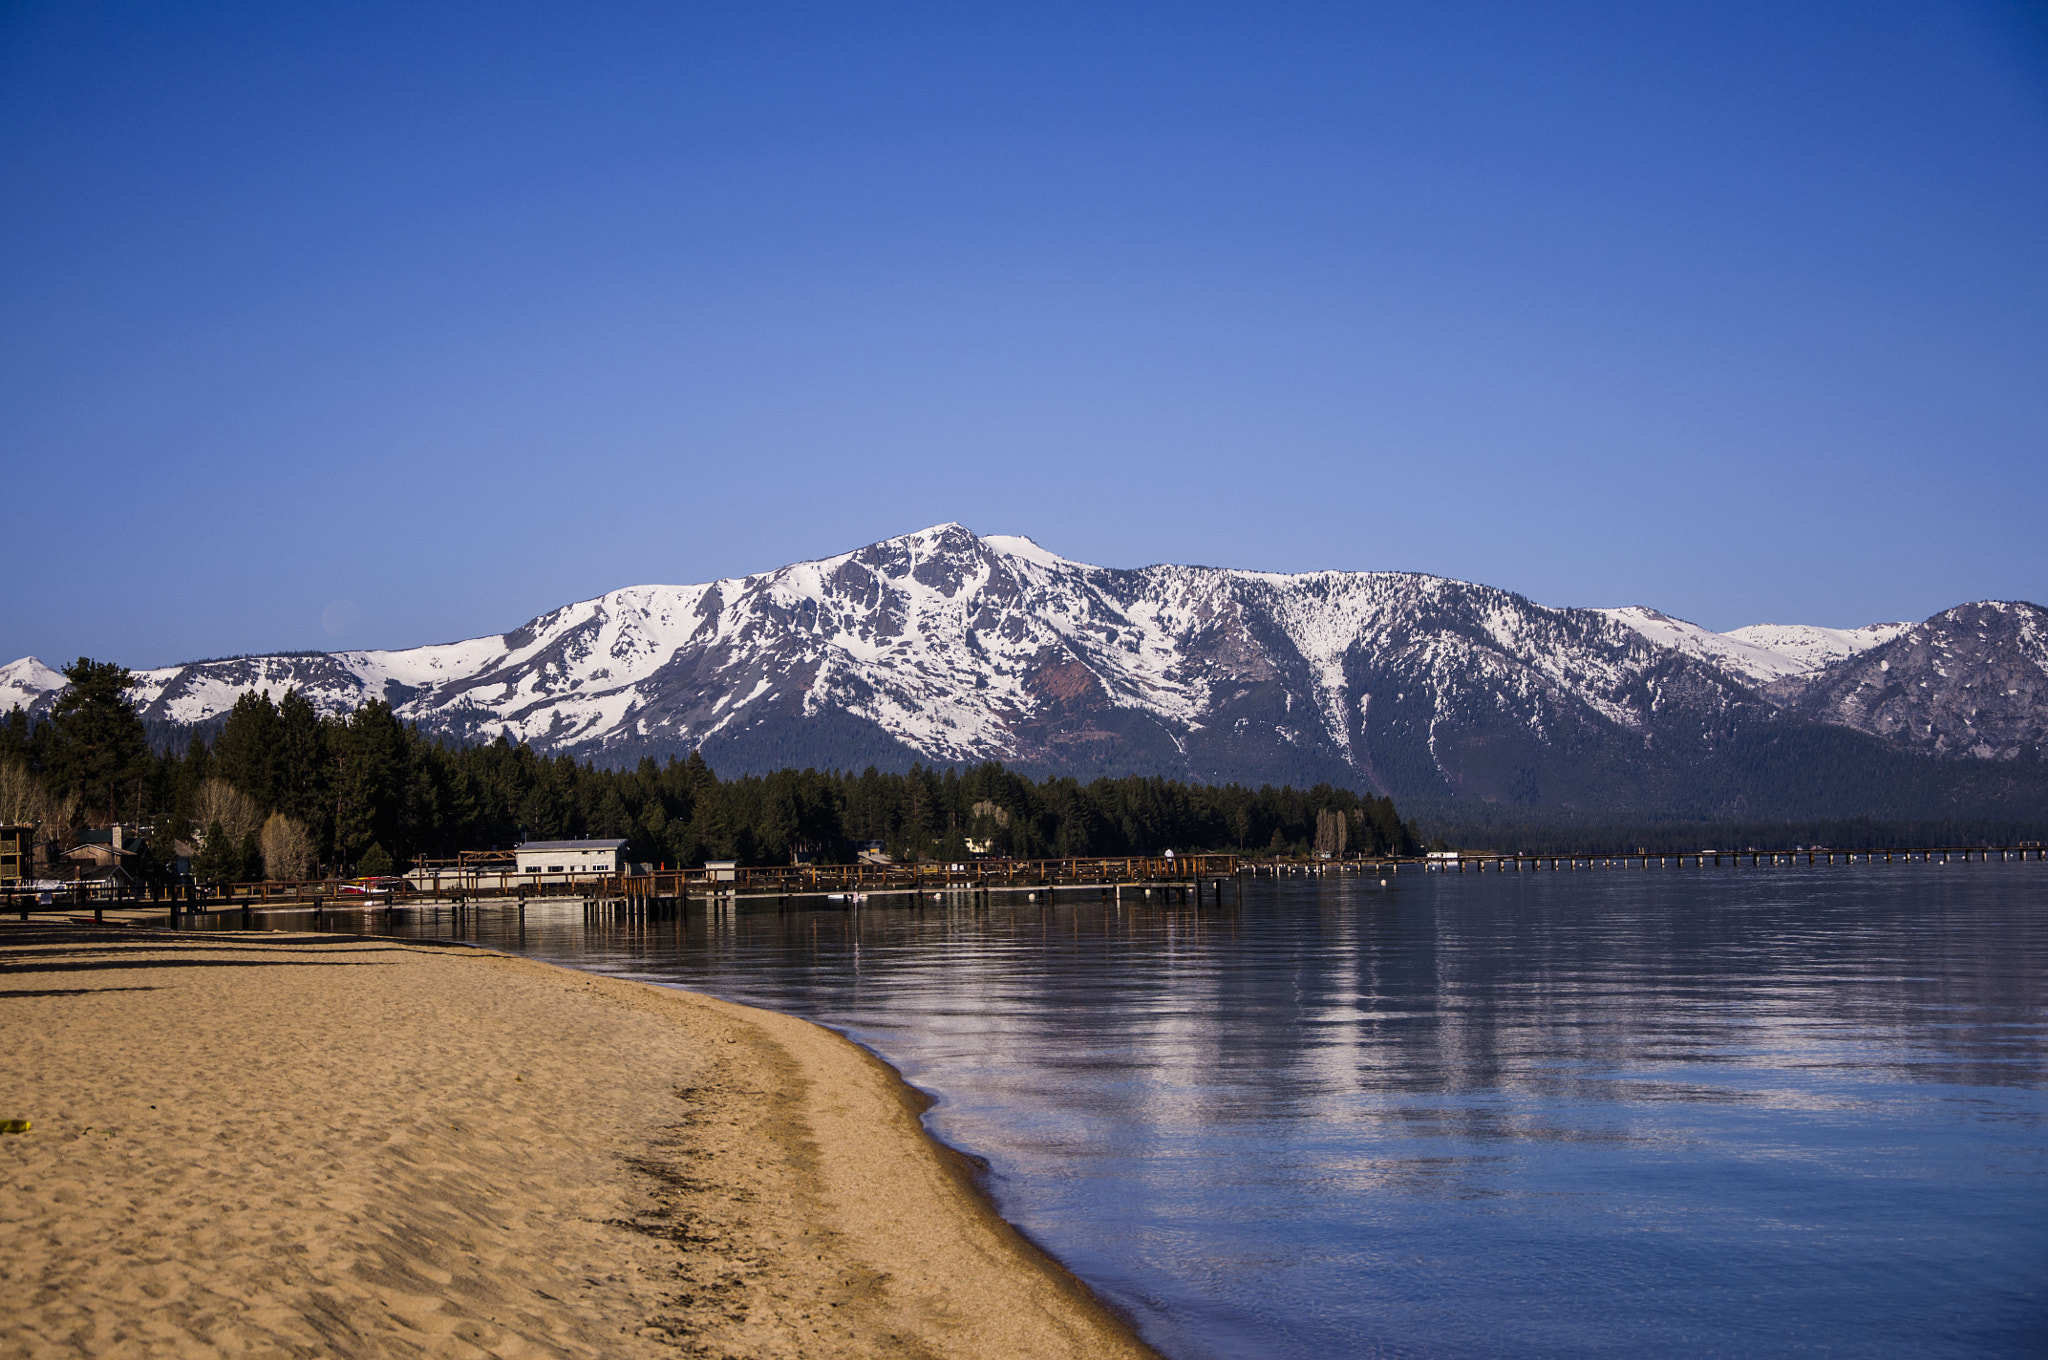 Photograph Lake Tahoe by Harit Himanshu on 500px